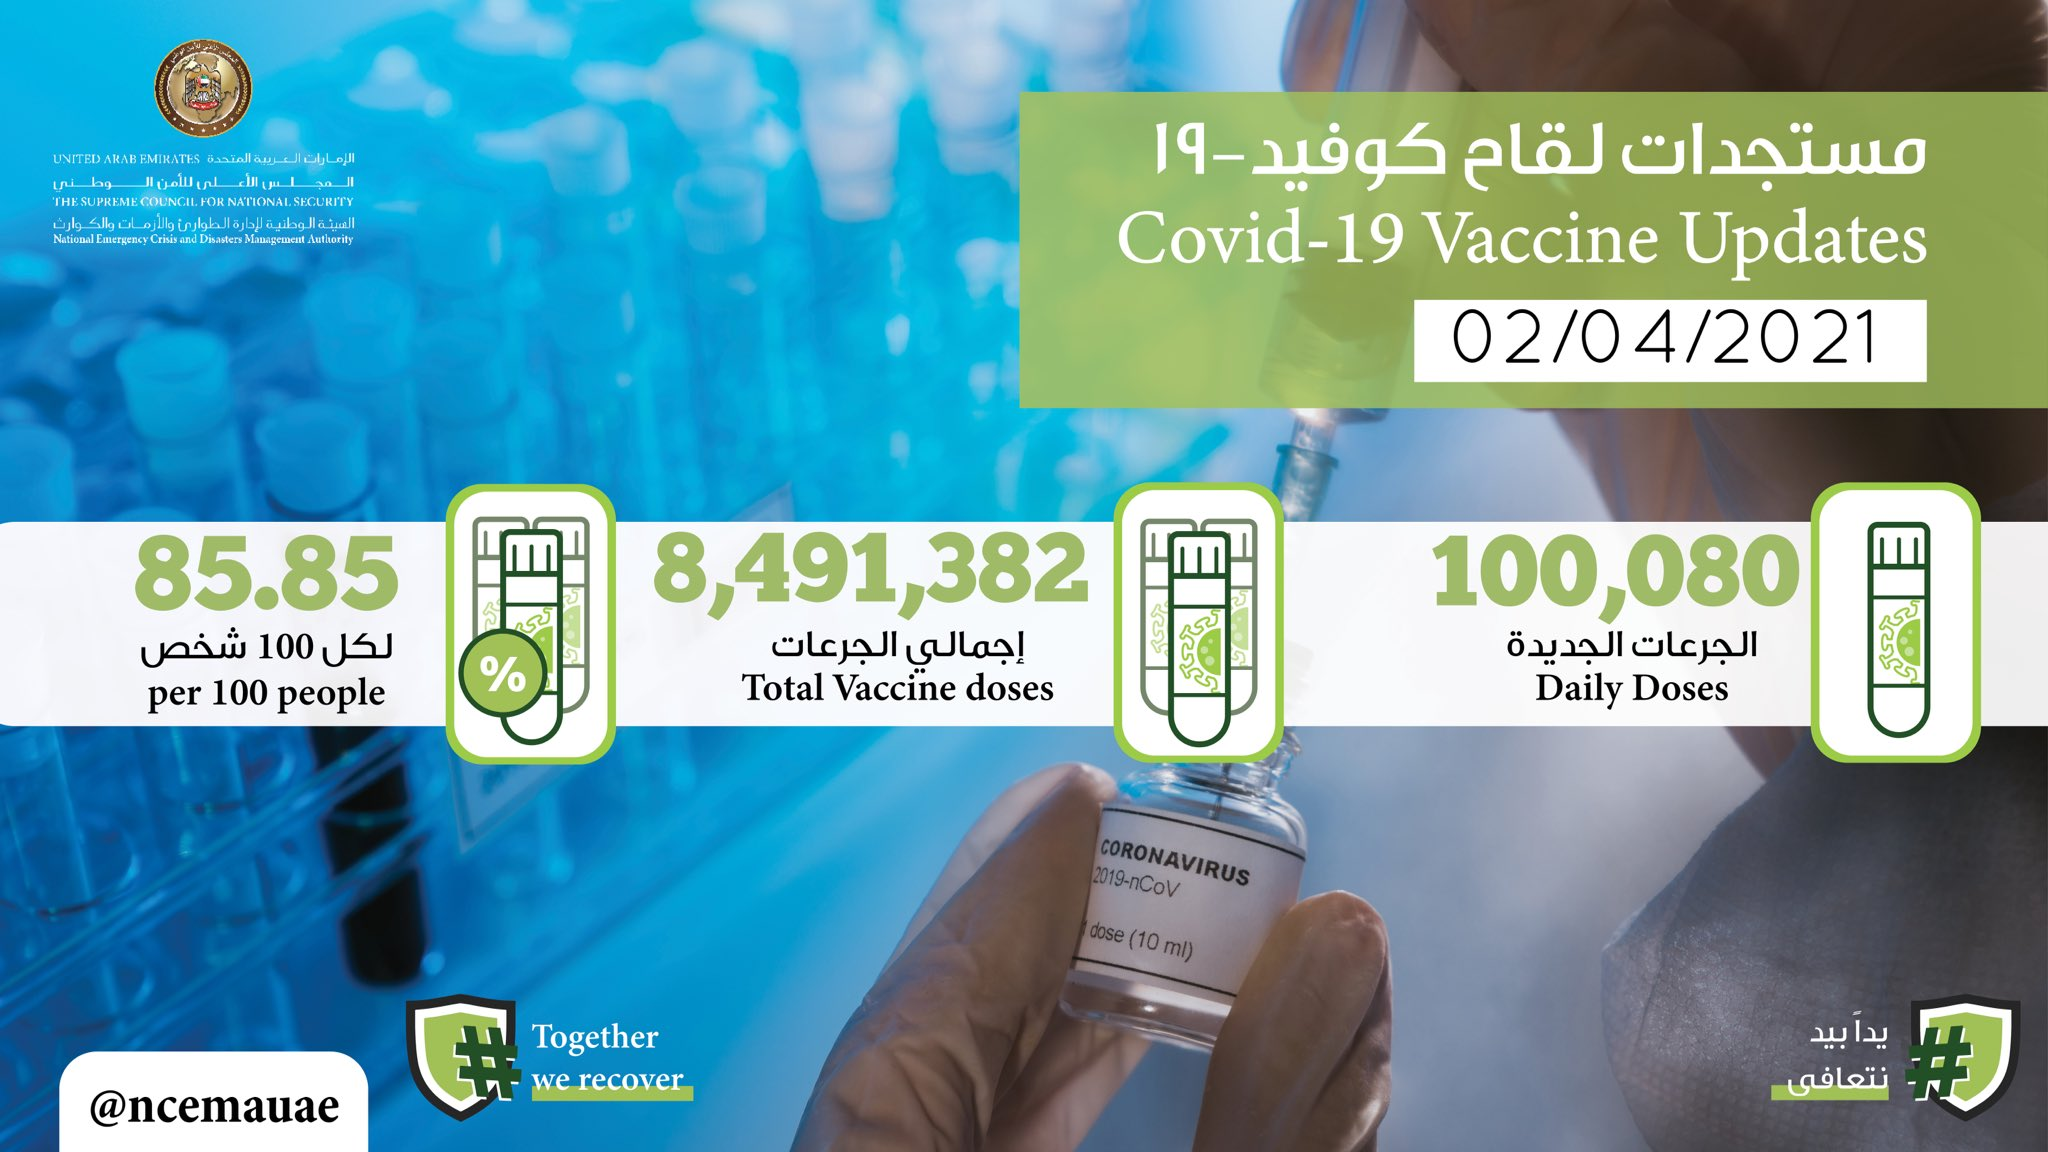 100,080 doses of the COVID-19 vaccine administered during past 24 hours: MoHAP